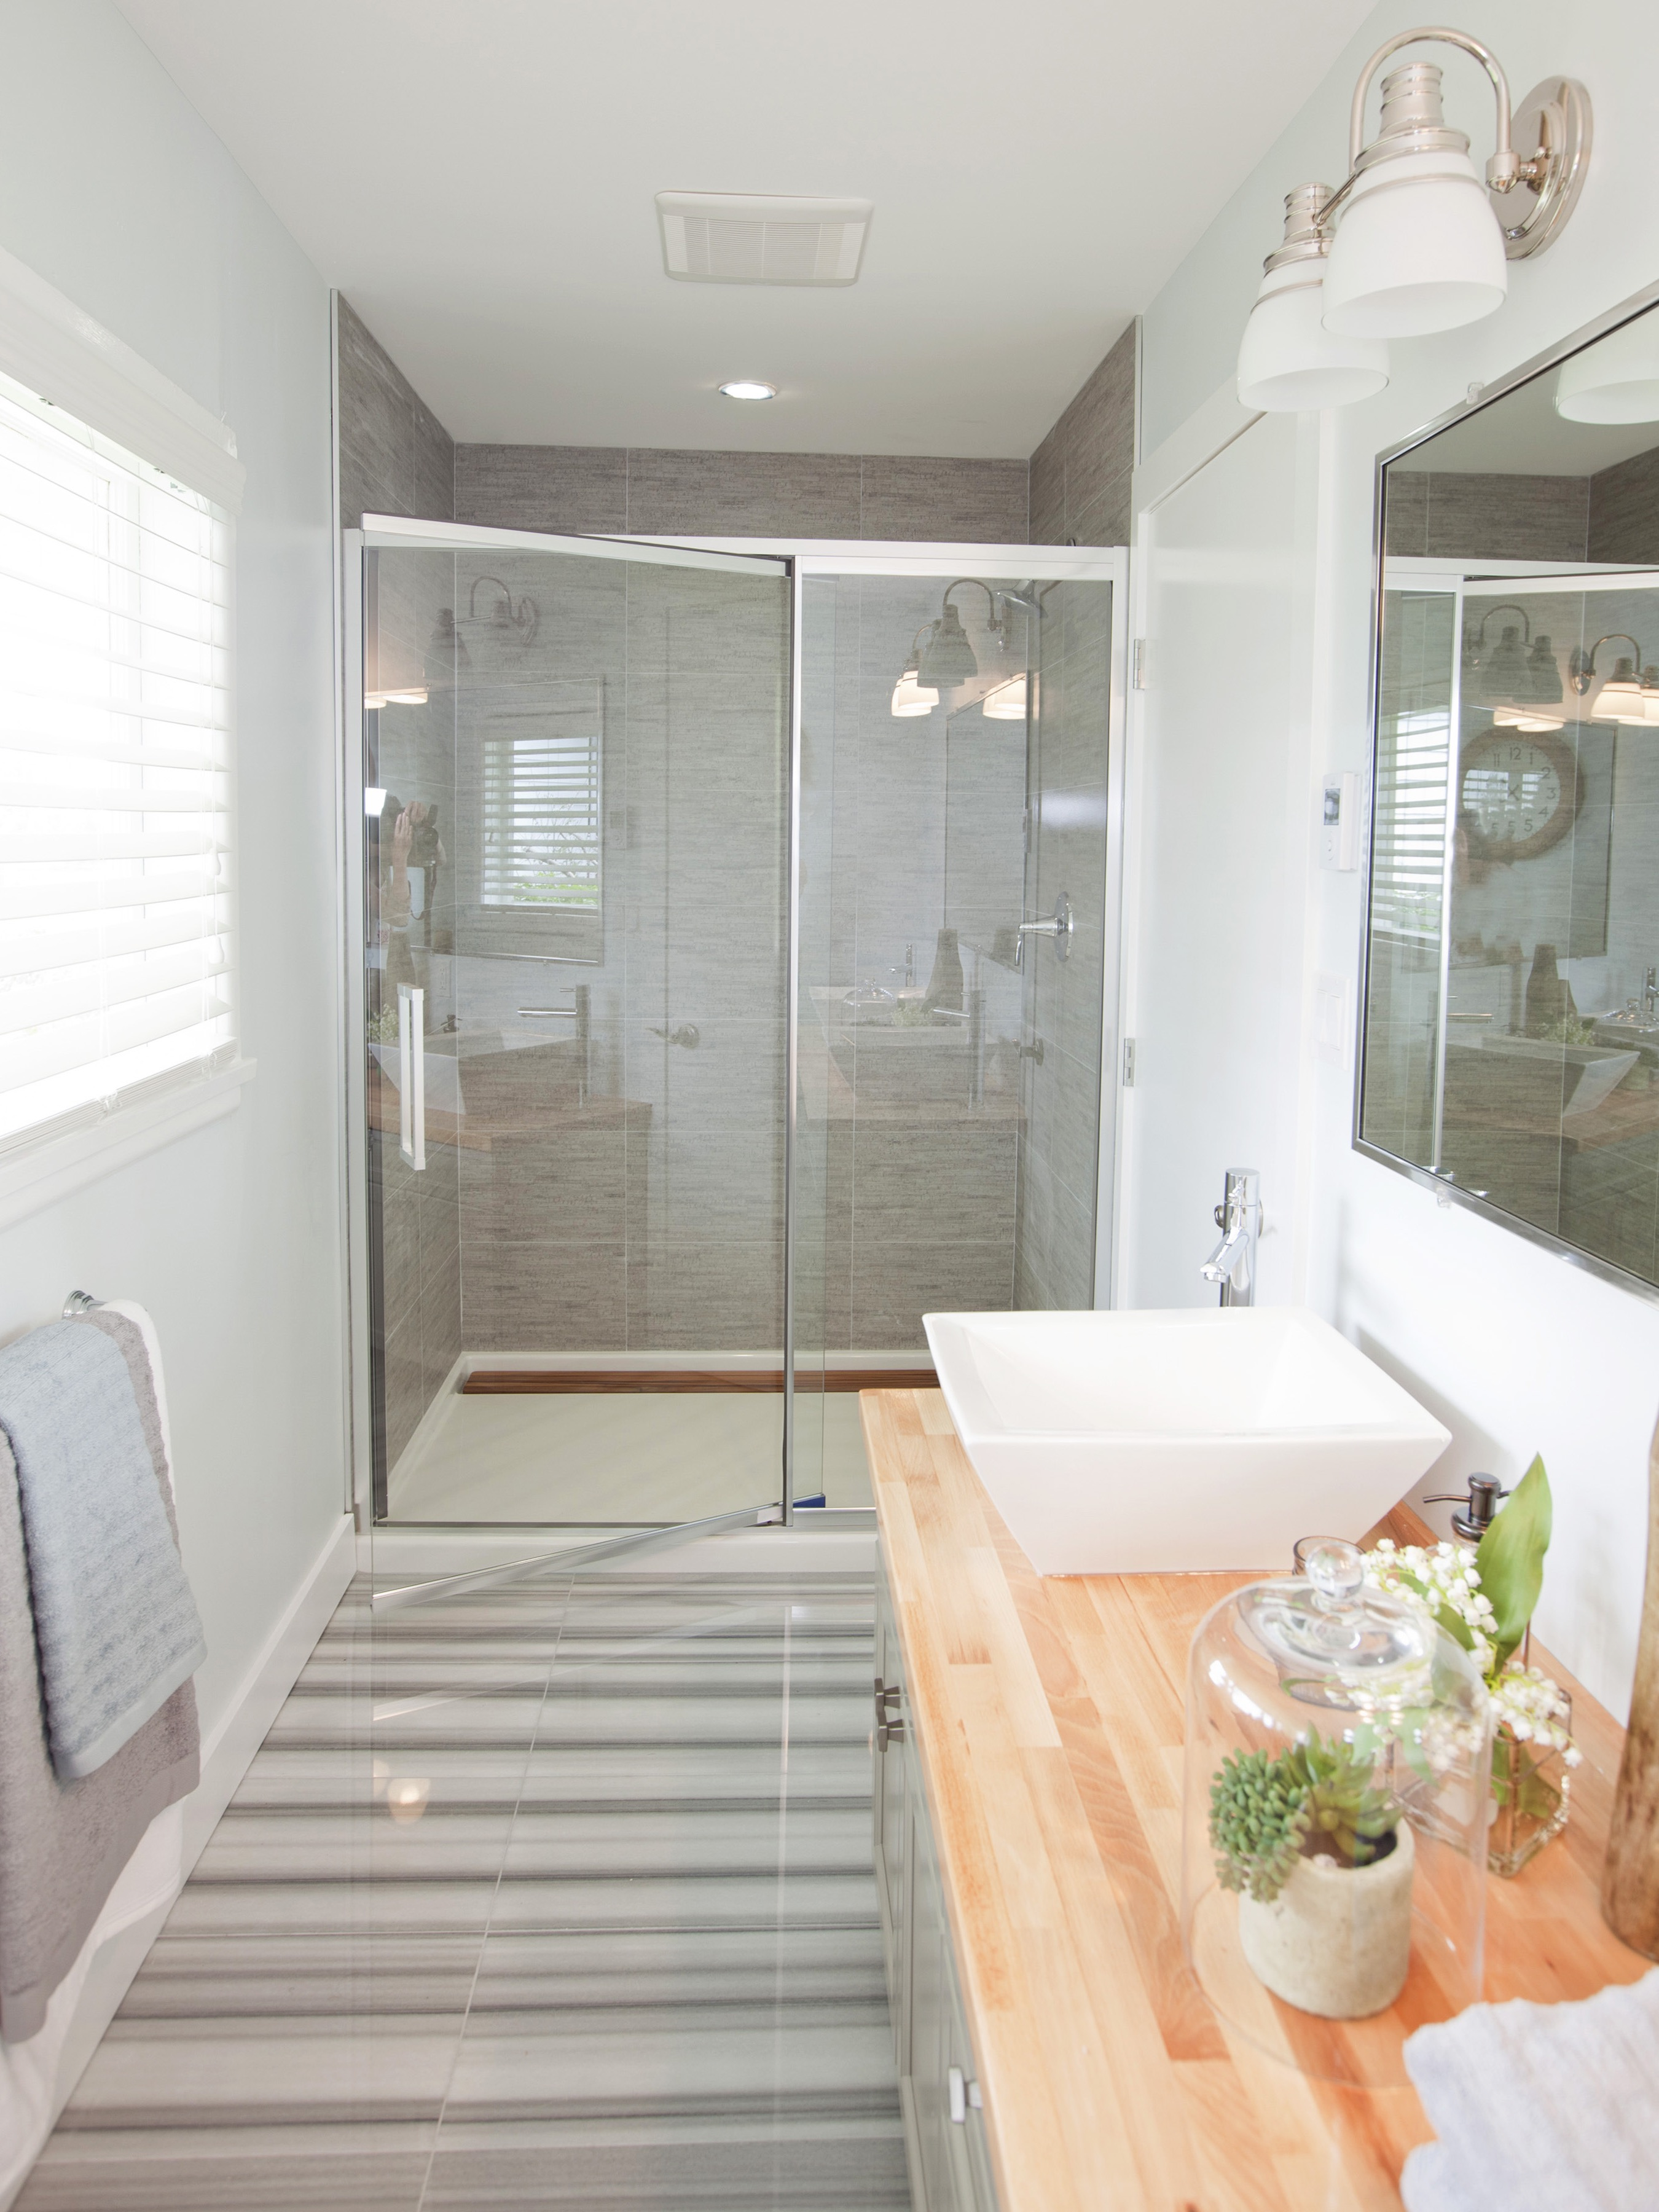 Large Modern Walk In Shower In Minimalist Design (Image 7 of 22)